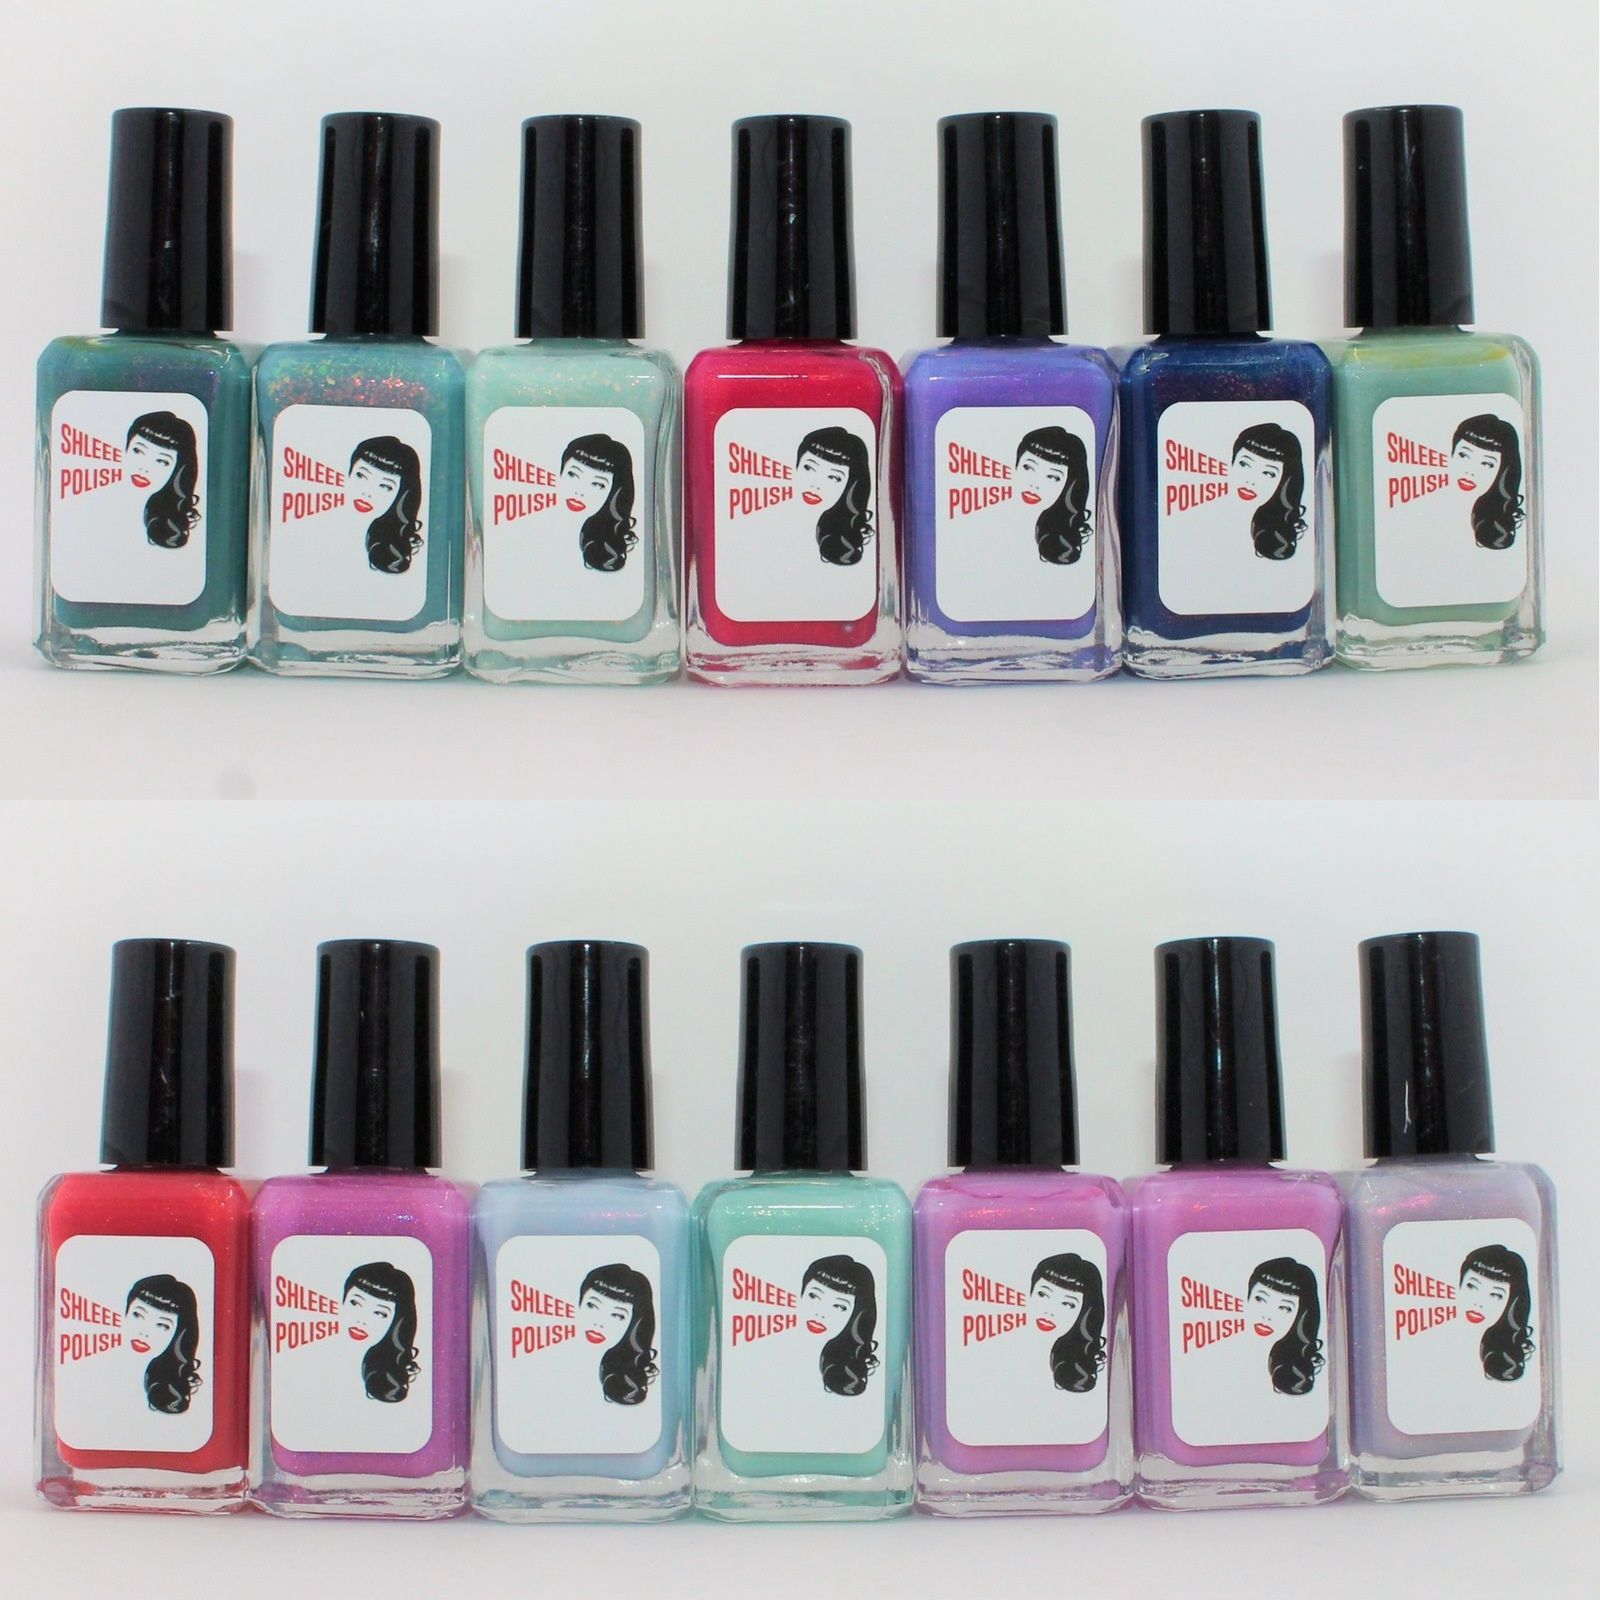 Shleee Polish Mariner, Tumbling Lights, Mint Opal, Dollar Princess, Me Time, Night Time Walkers, Mint Julep, Less Than Lovers, Dream Glow, Glacier heart, Hold Your Breath,, Drama Club (2 of them),  Full Flower Moon.